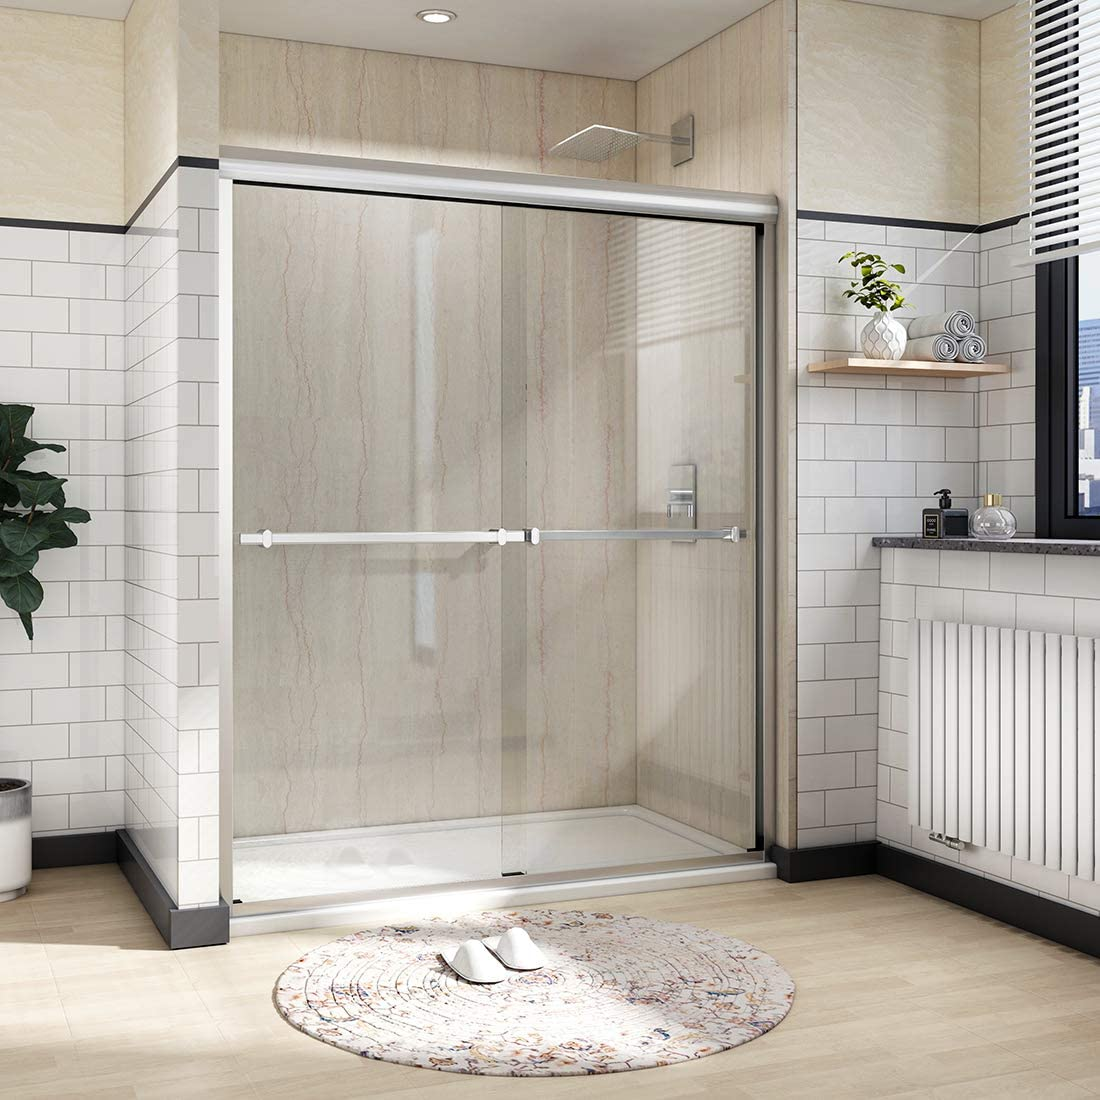 Meykoe 60 x72 Double Sliding Shower Door 1 4 Clear Tempered Glass Shower Enclosure Sliding Door – Brushed Nickel Finish